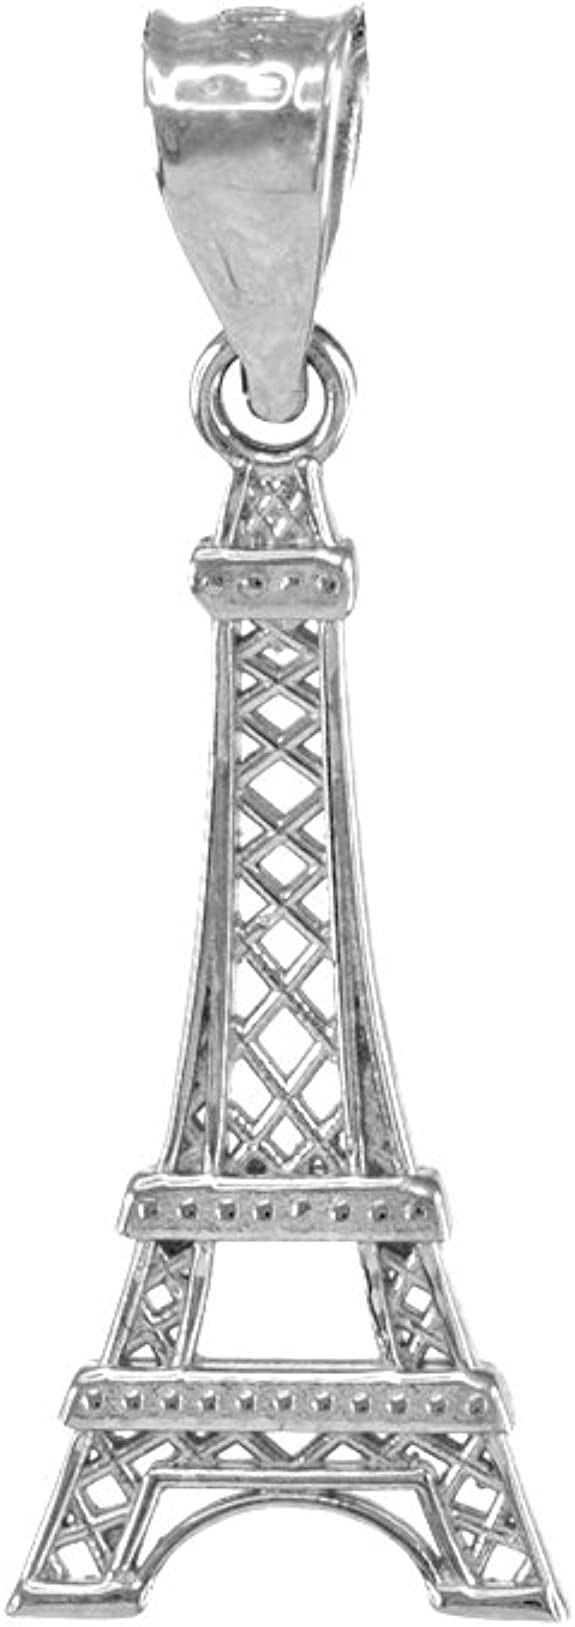 Handmade Jewelry. Eiffel Tower Charm Necklace in Silver with Saffron Red Crystal and Fresh Water Pearl